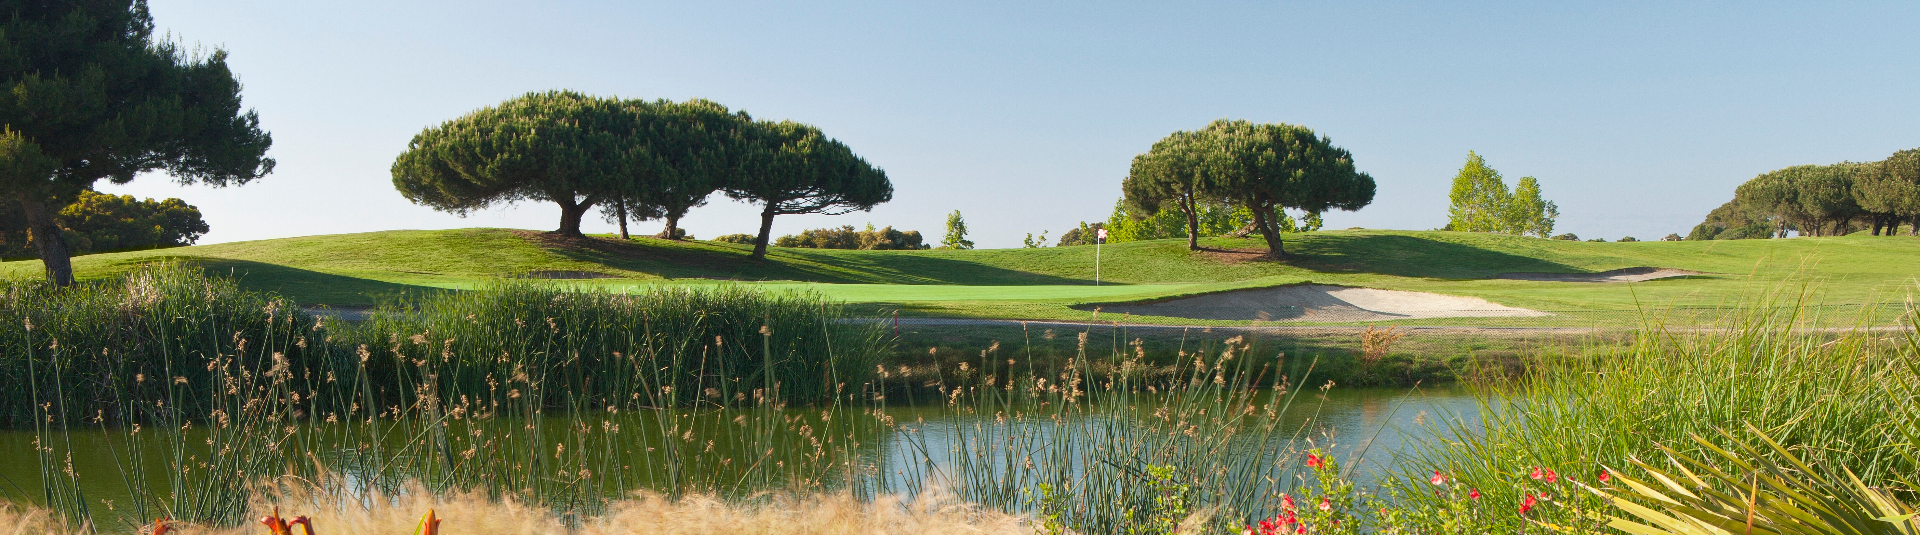 Shoreline Golf Links is located in Mountain View, CA